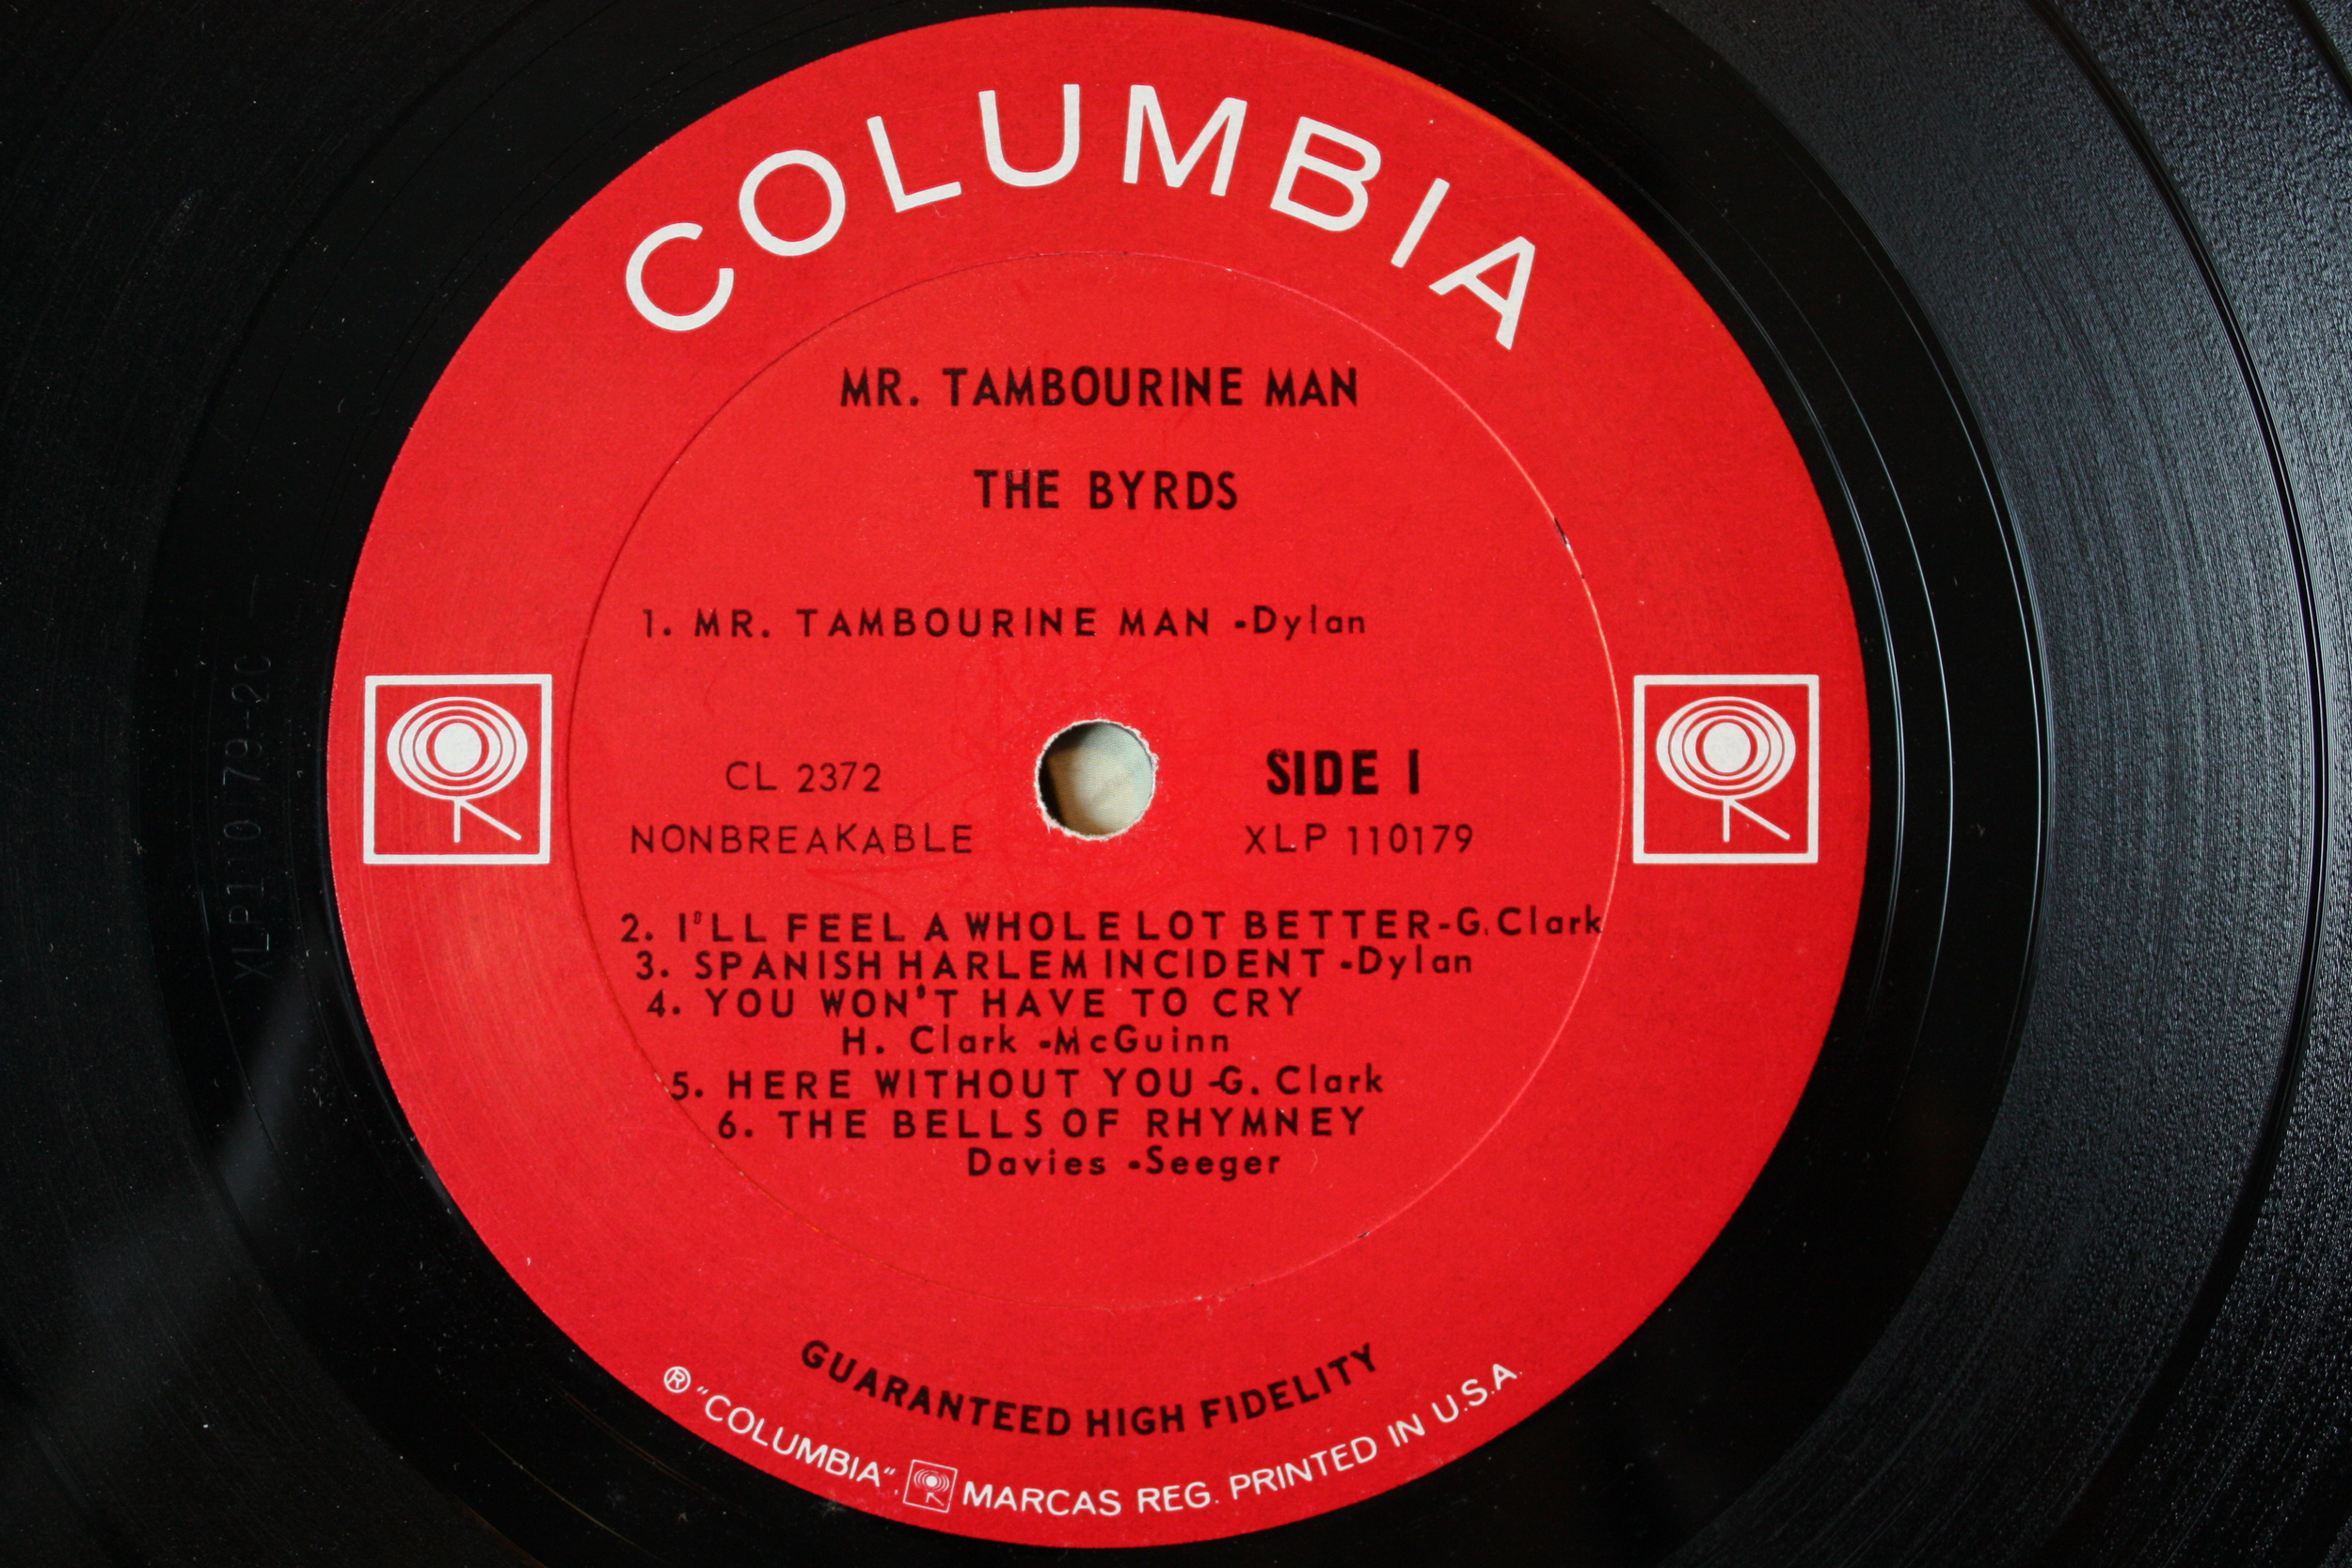 Mr. Tambourine Man label